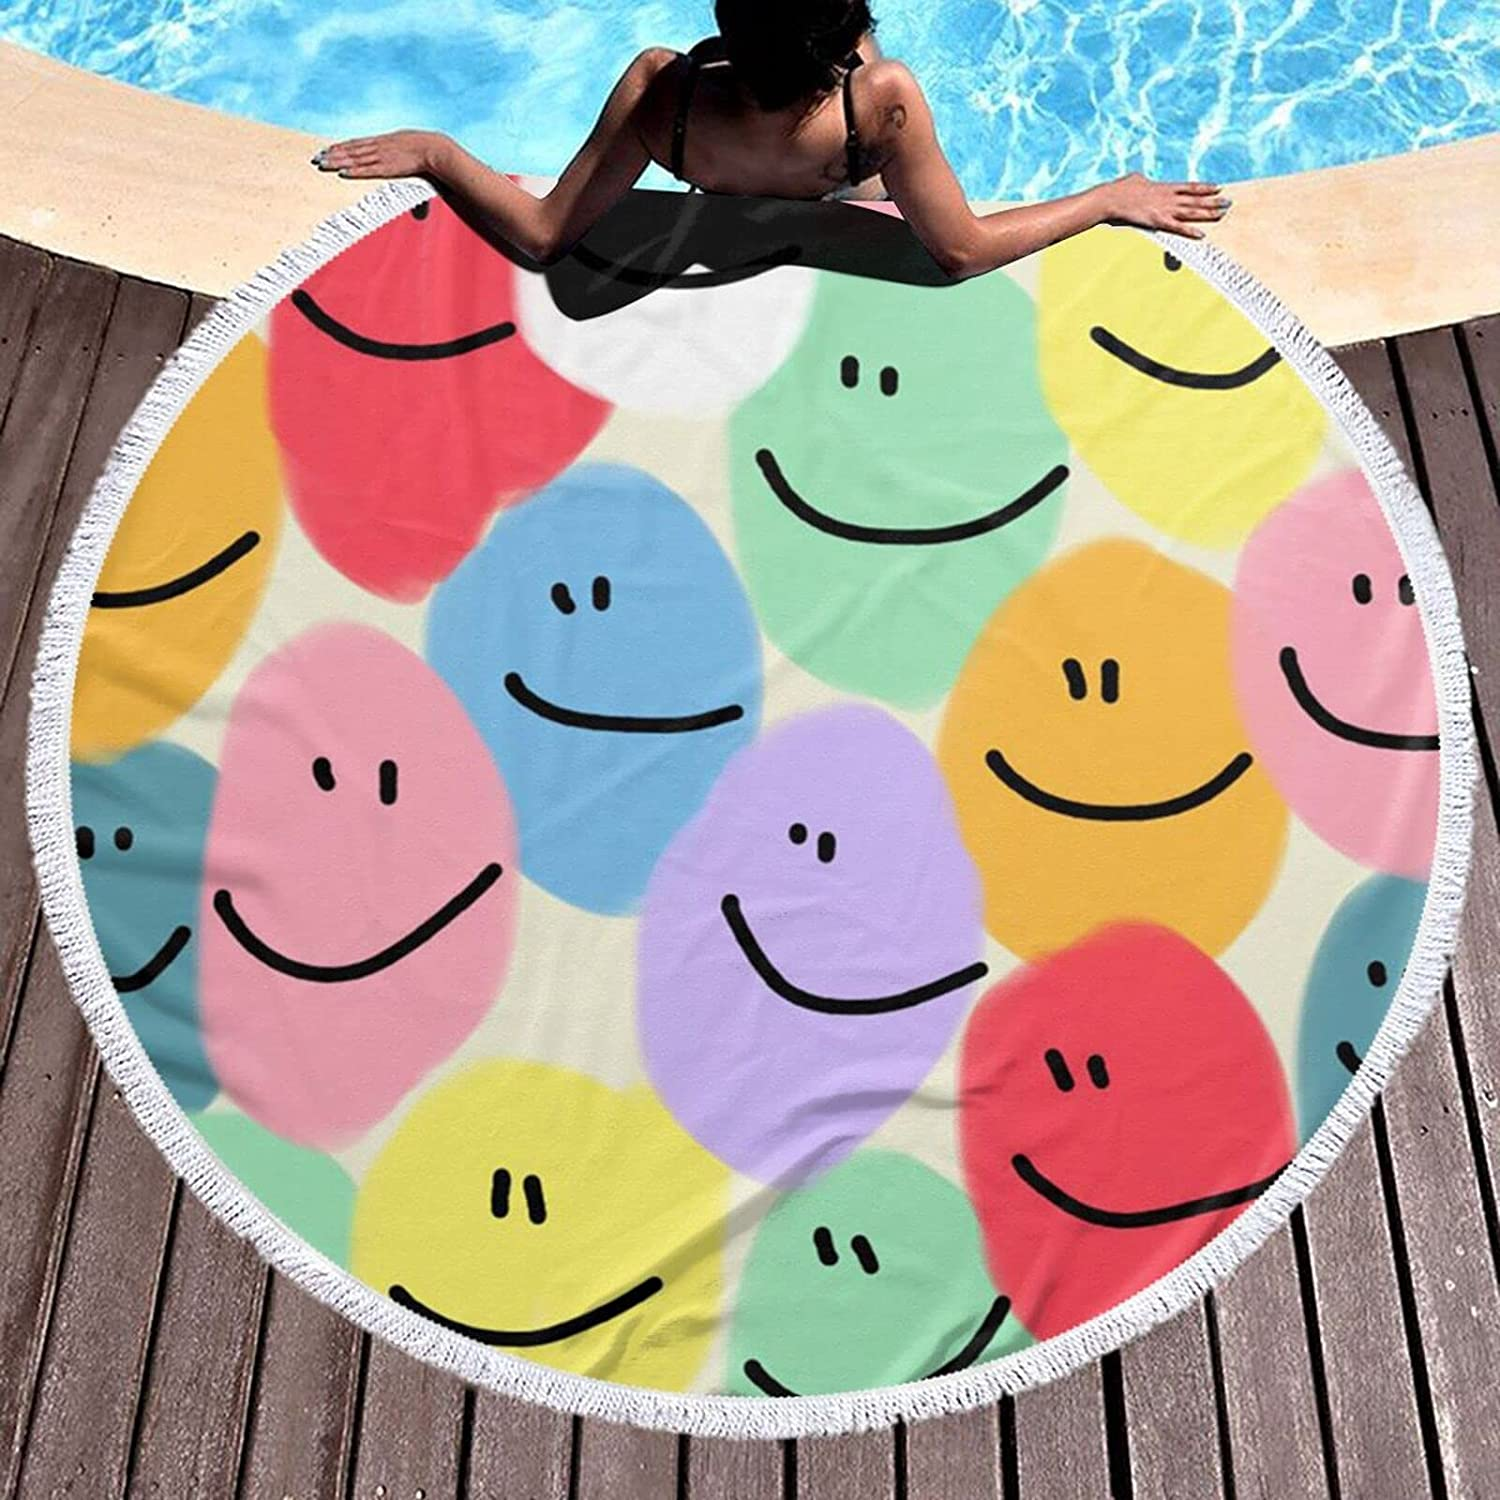 Colorful Melting Boston Mall Smiley Outlet SALE Face Hawaii Towel Usag Beach Multi Round